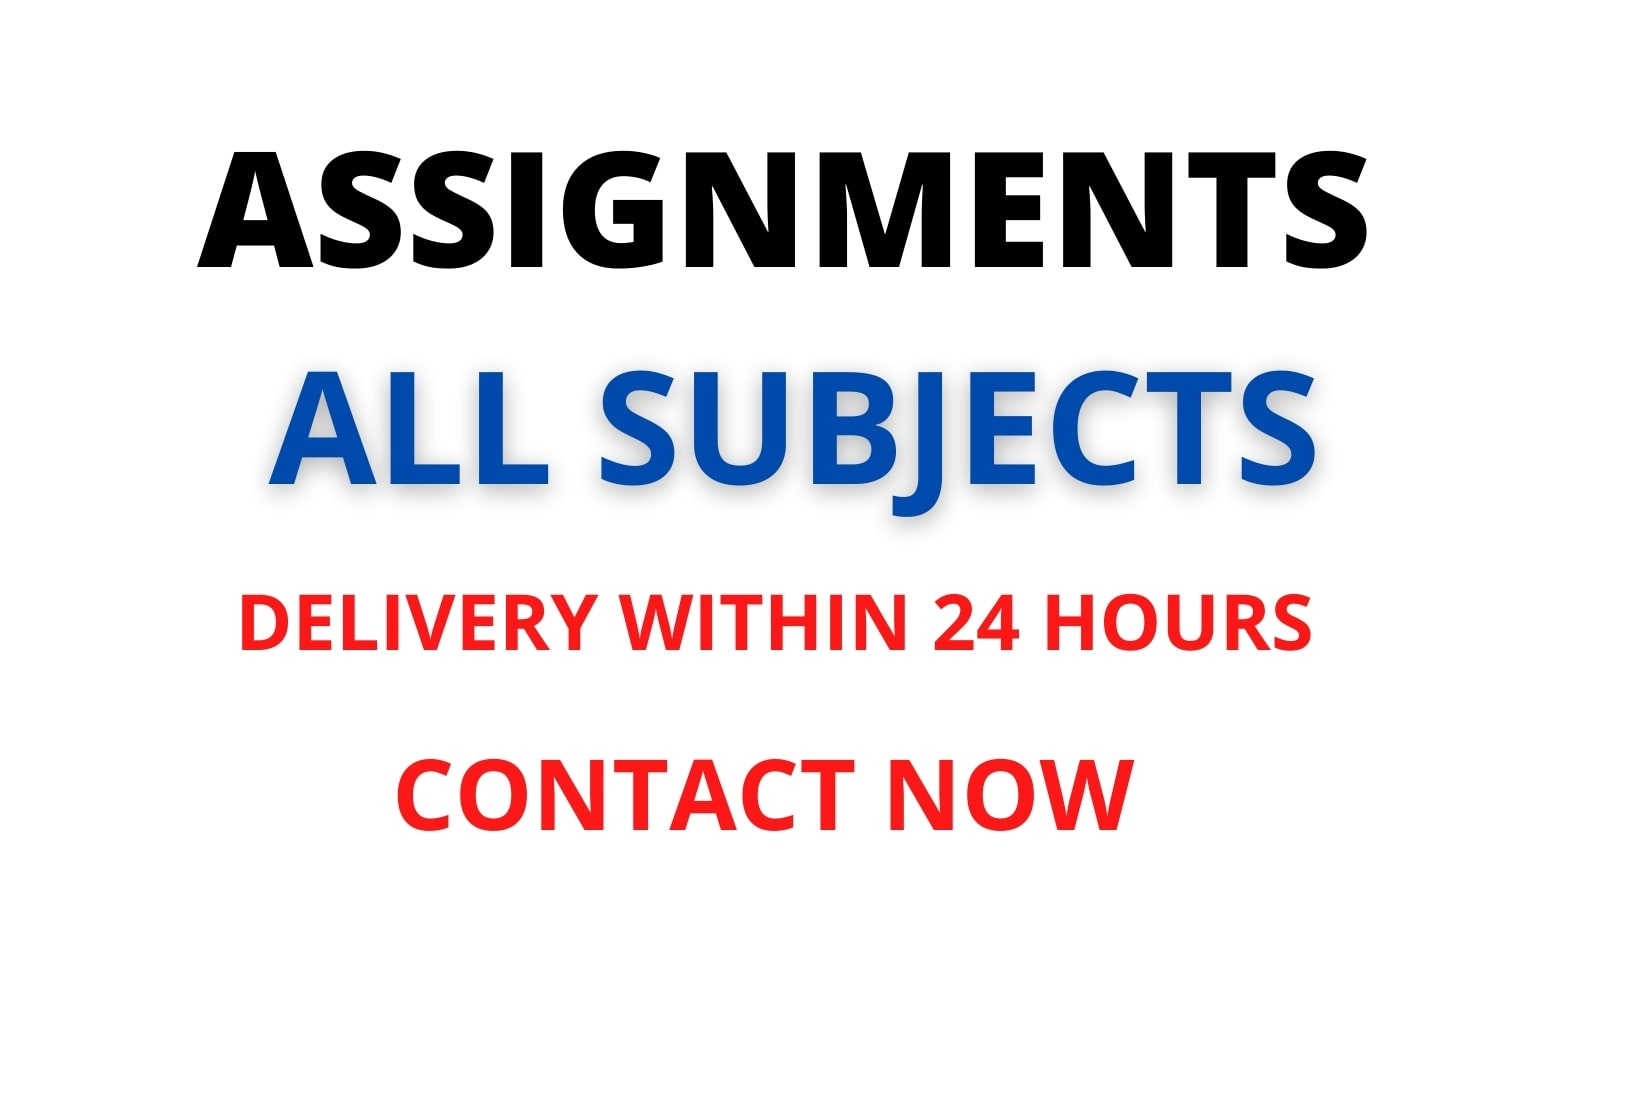 I will do essay writing and assignment writing for you manually In 24 Hours